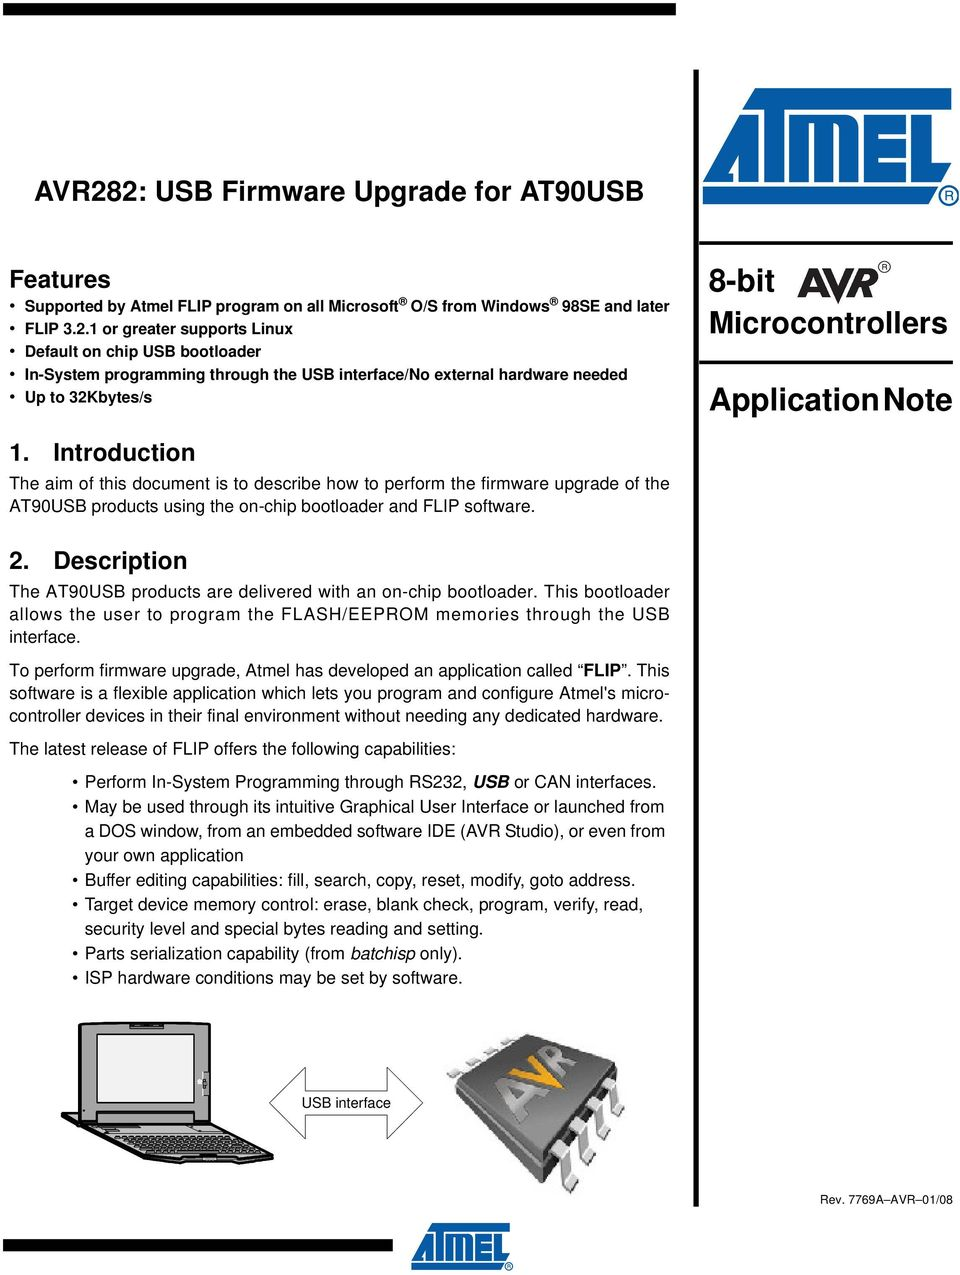 Description The AT90USB products are delivered with an on-chip bootloader. This bootloader allows the user to program the FLASH/EEPROM memories through the USB interface.